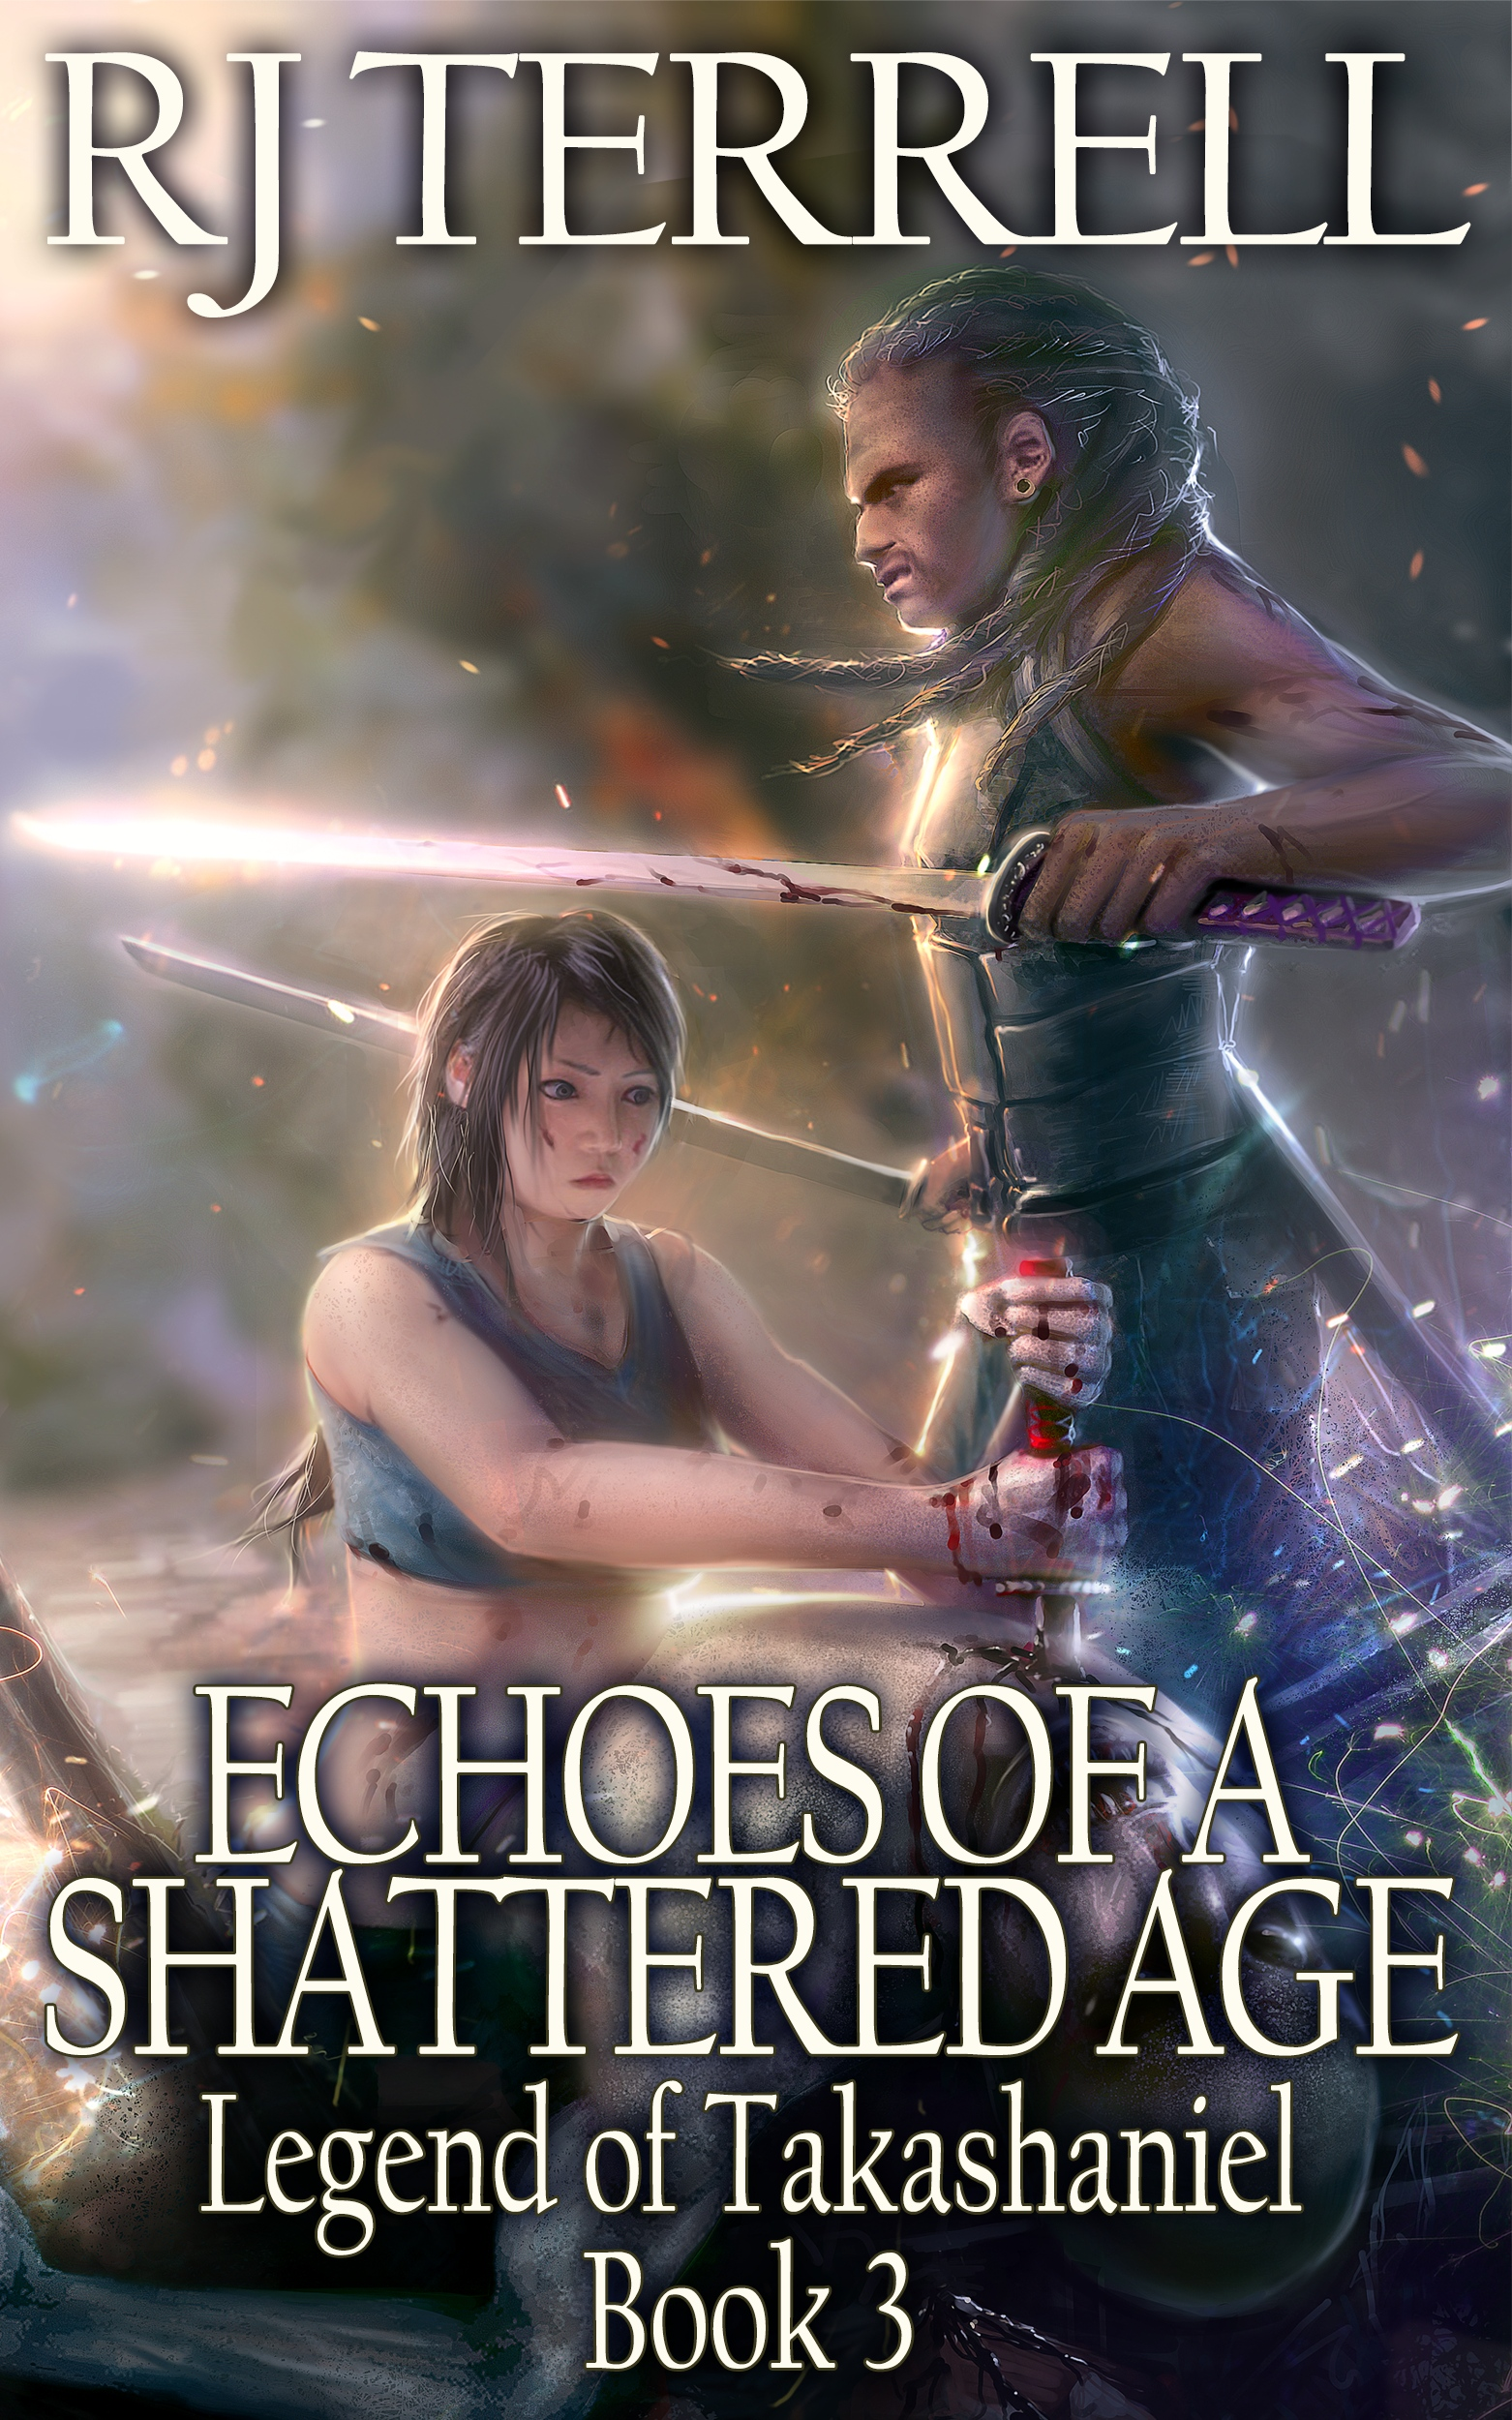 R. J. Terrell - Echoes Of A Shattered Age (Legend of Takashaniel, Book 1) (For fans of Terry Books, R. A. Salvatore, Brandon Sanderson, Weis and Hickman, Christopher Paolini)